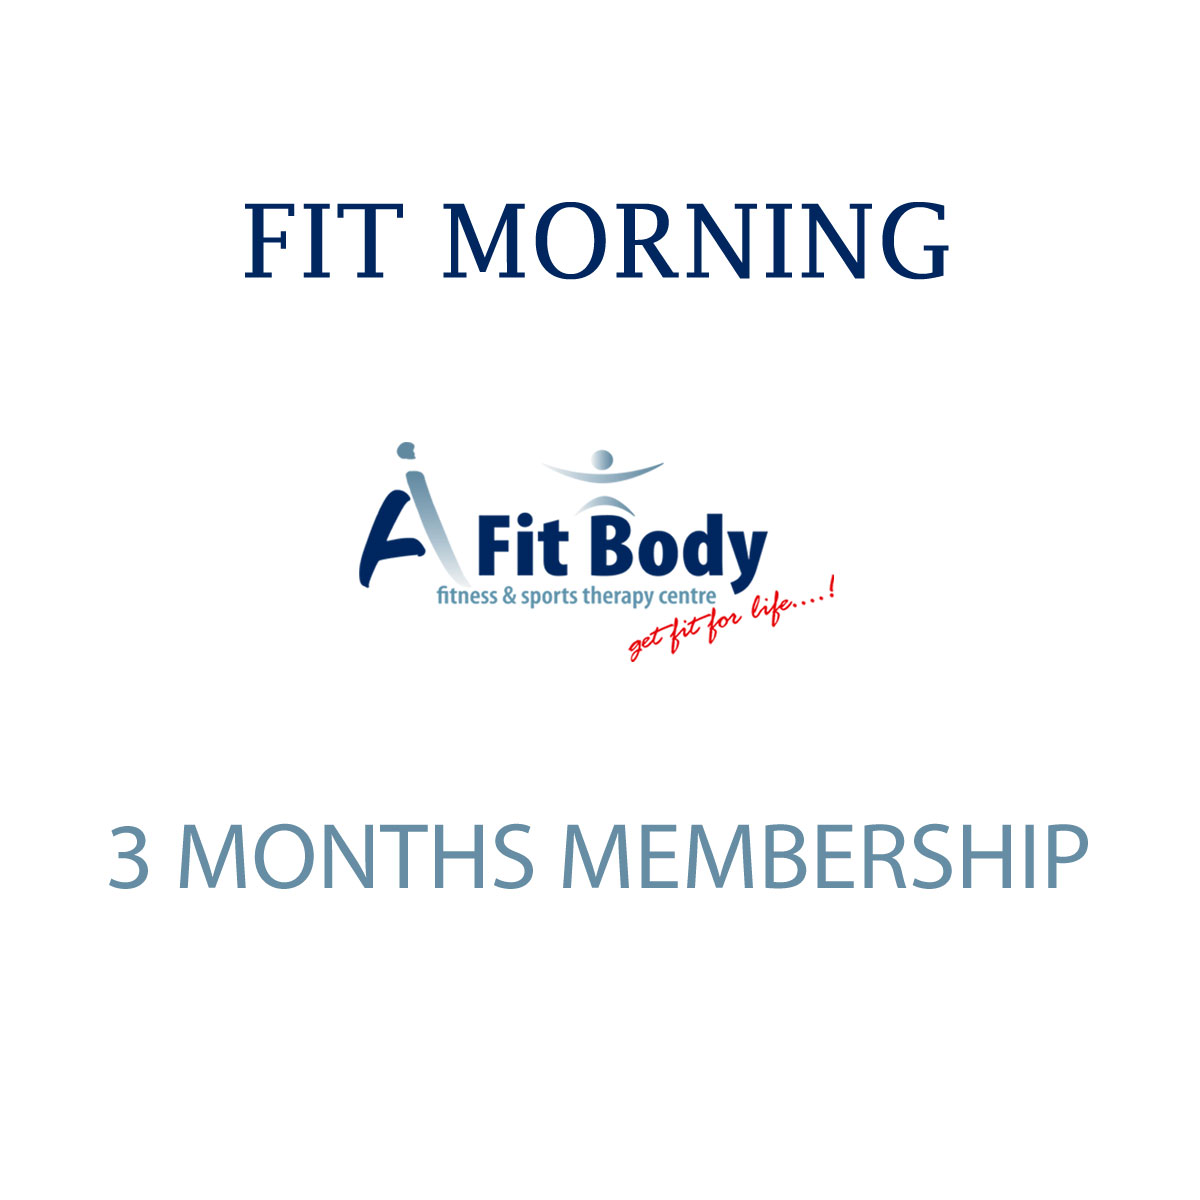 Fit Morning - 3 Months Membership